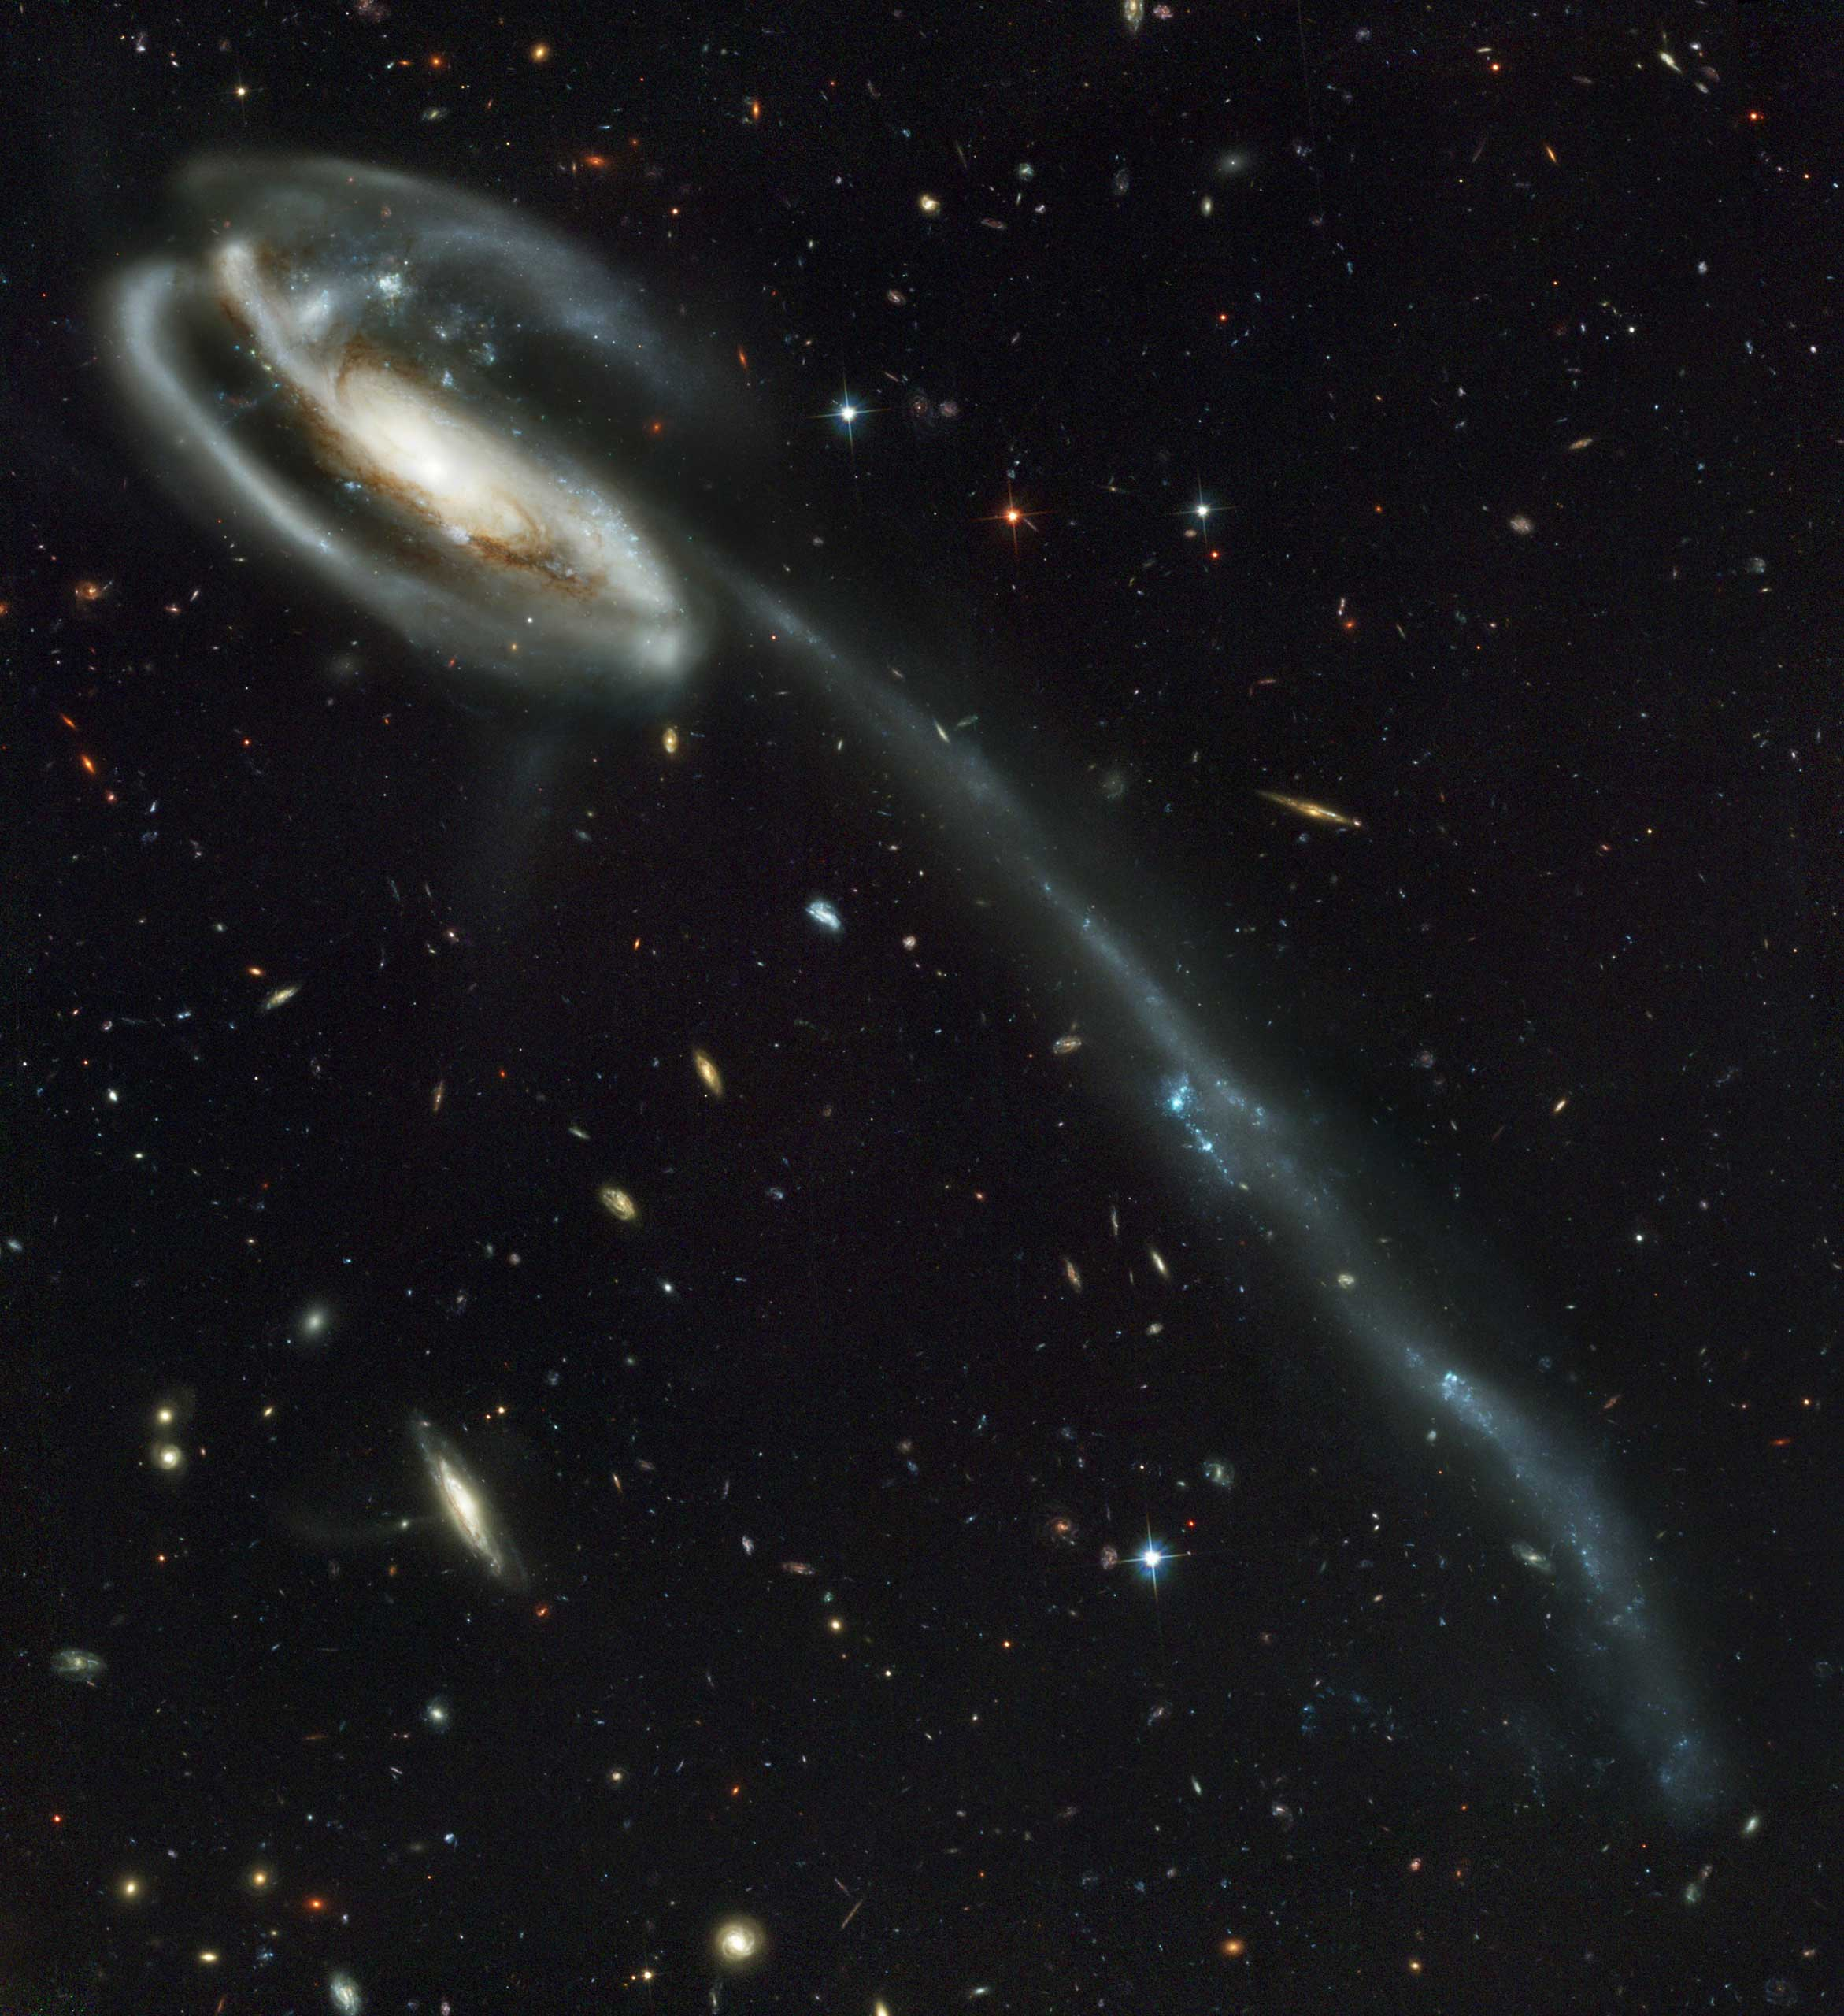 <strong>The Tadpole</strong>:                                   The distorted shape of this spiral galaxy, also known as UGC 10214,  was caused by a small interloper, a very blue, compact galaxy visible in the upper left corner of the more massive Tadpole. The Tadpole resides about 420 million light-years away in the constellation Draco. Strong gravitational forces from the interaction created the long tail of debris, consisting of stars and gas that stretch out more than 280,000 light-years.                                   <i>Image released on April 30, 2002</i>